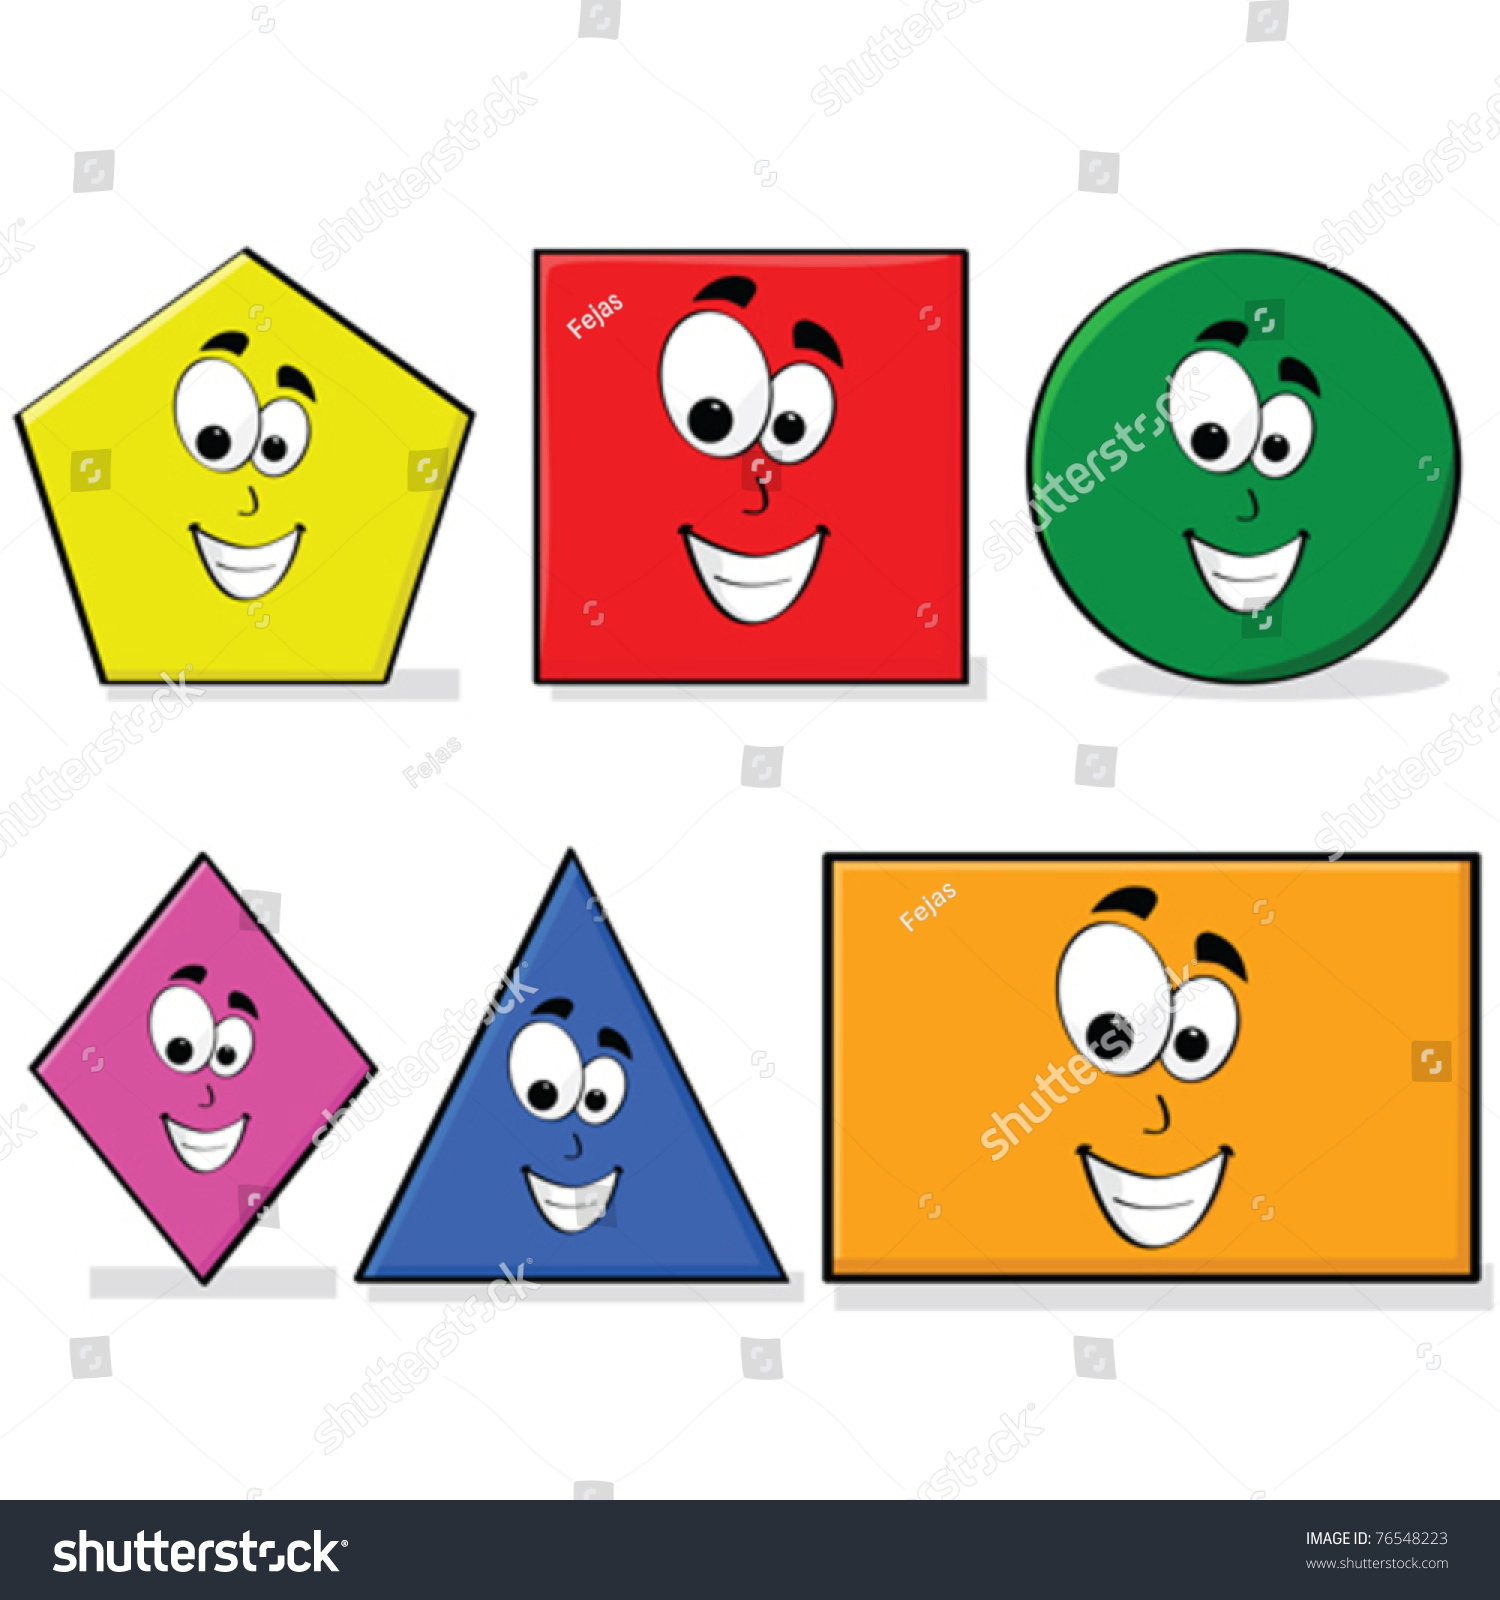 Vector Illustration Shapes Different Colors Happy Stock Vector ...